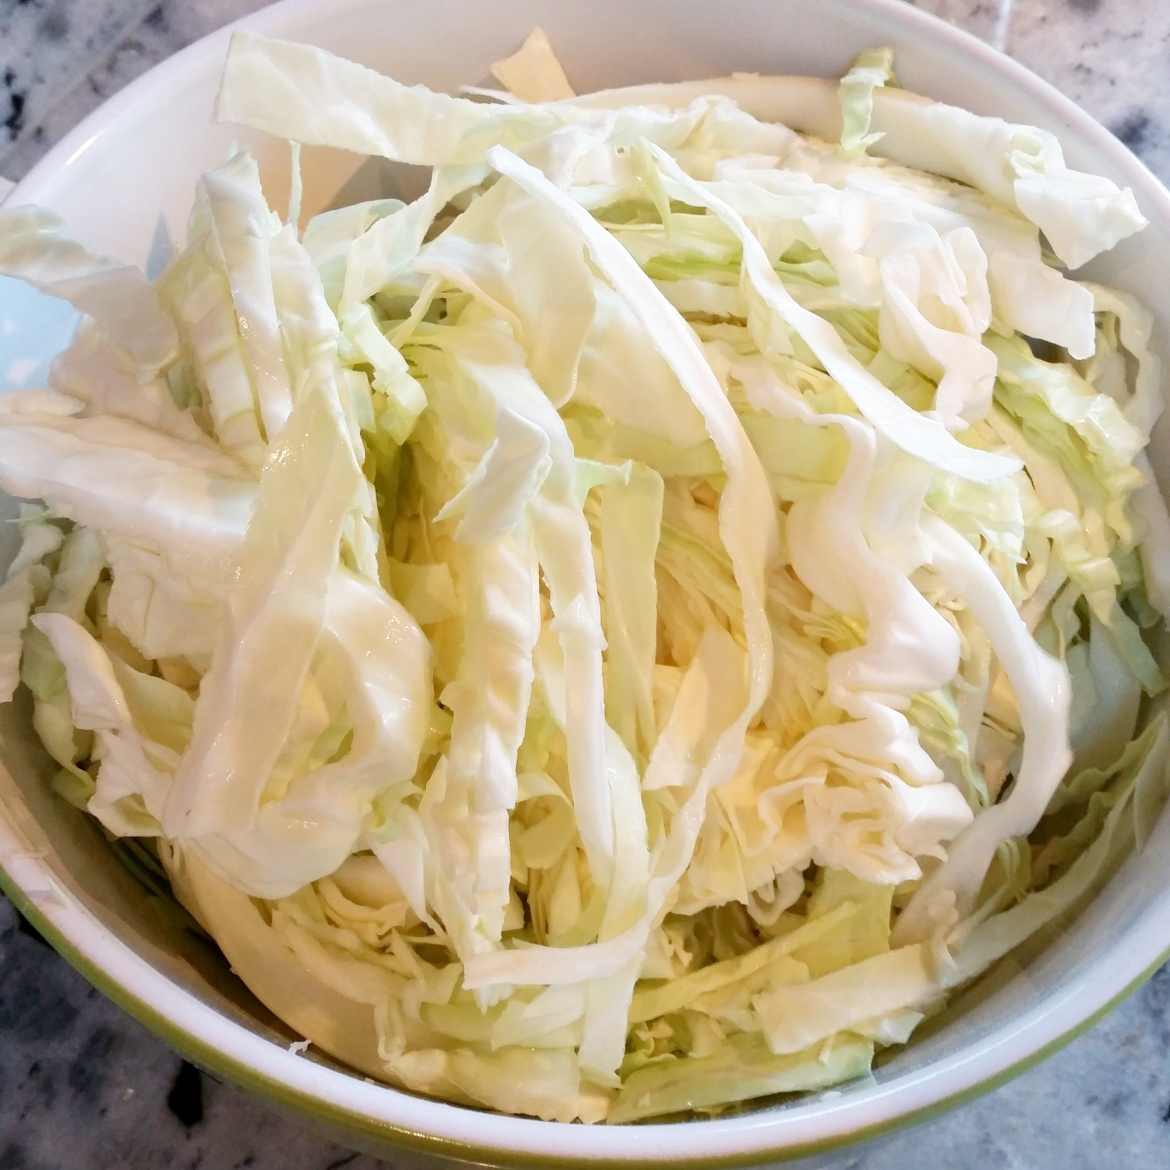 Slice the cabbage and put in a bowl